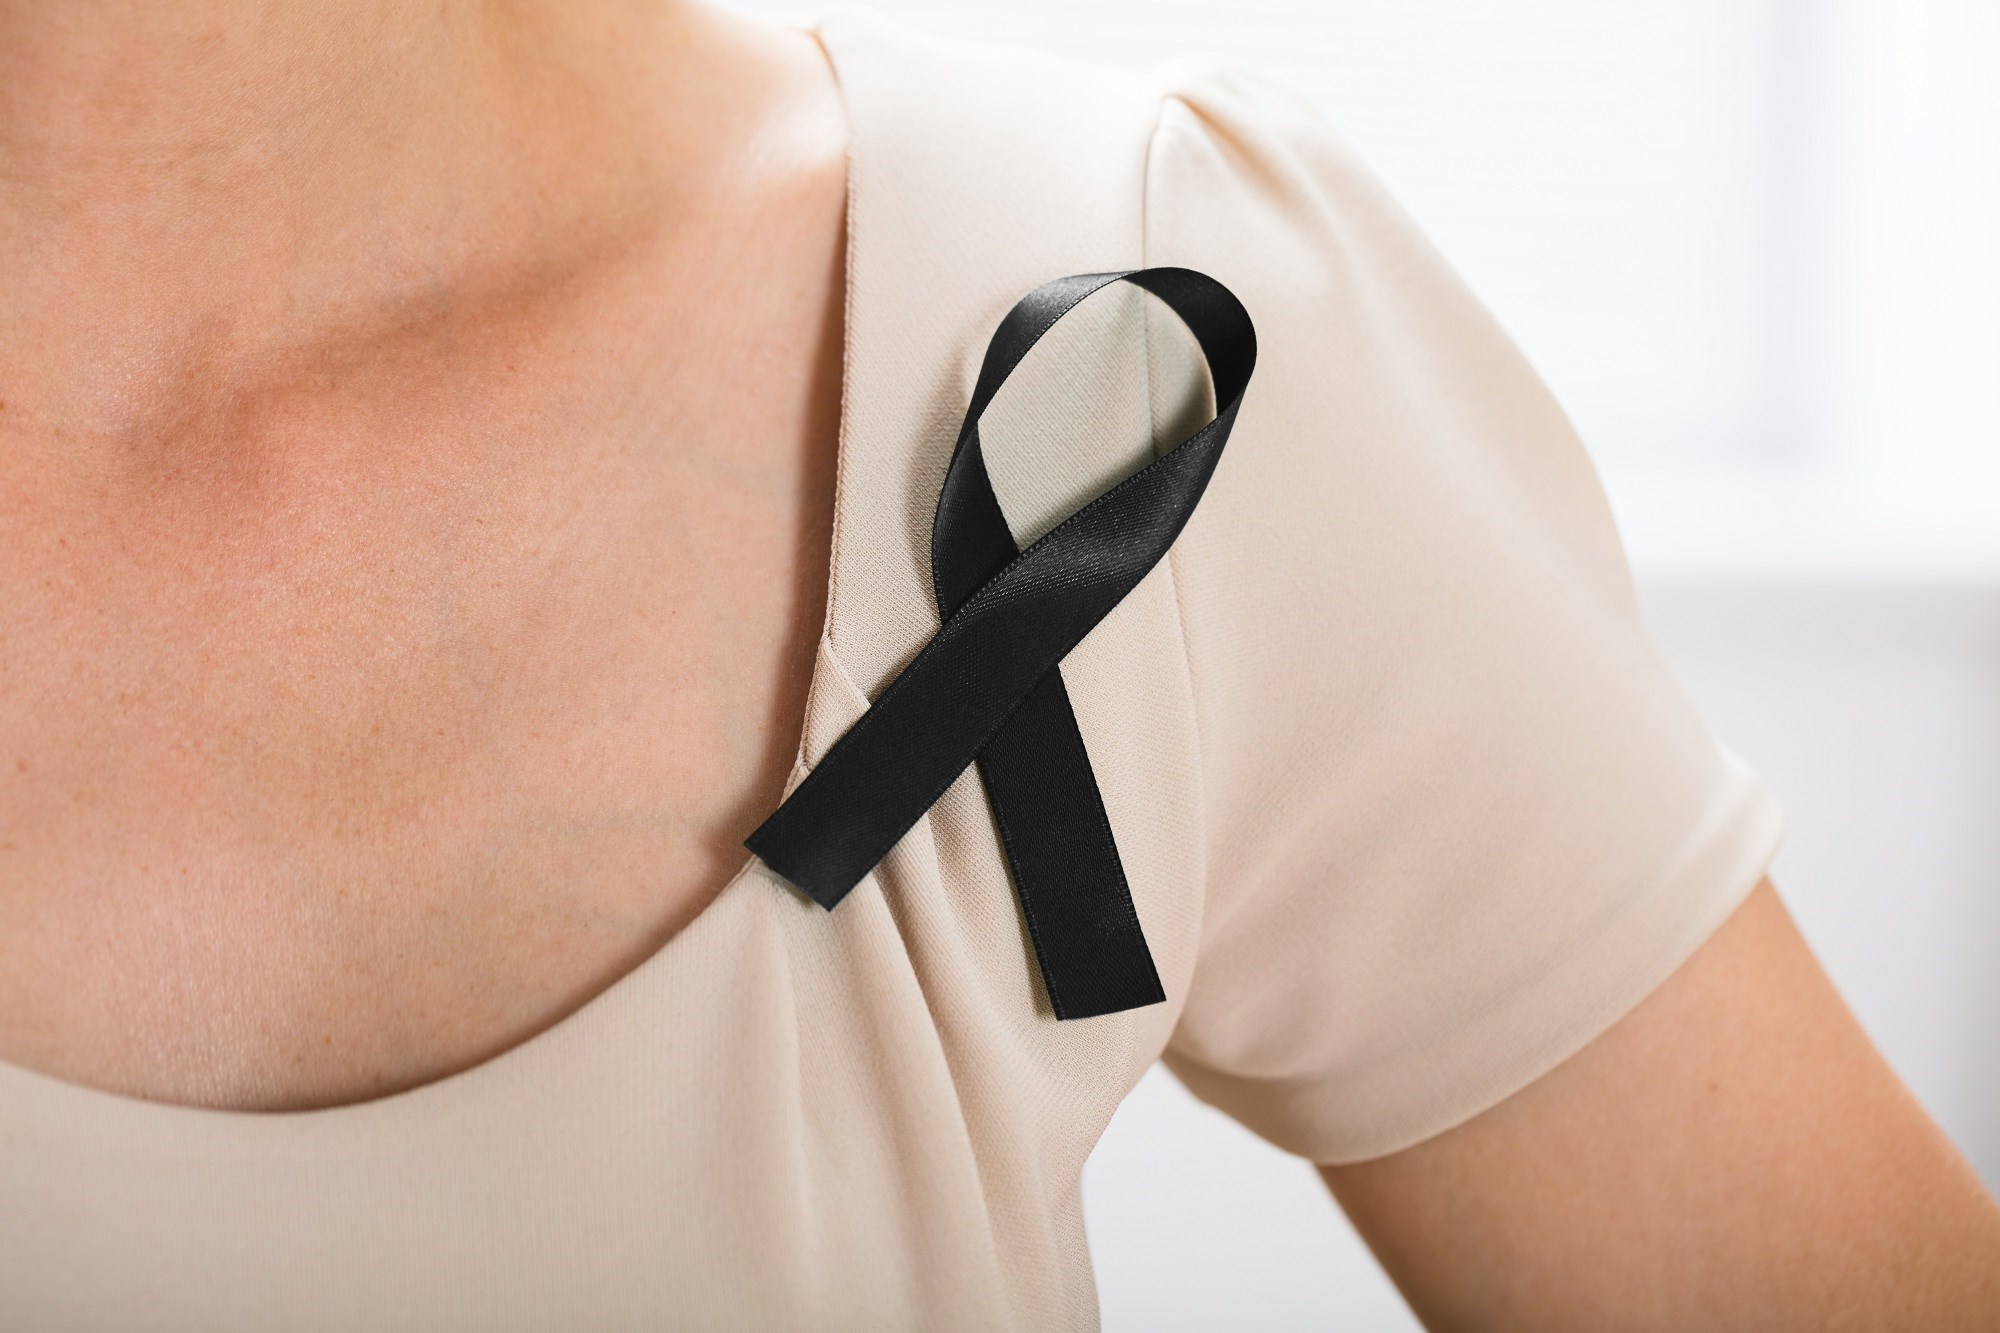 Cancer Mortality Up for 2nd-, 3rd-Generation Latino Immigrants